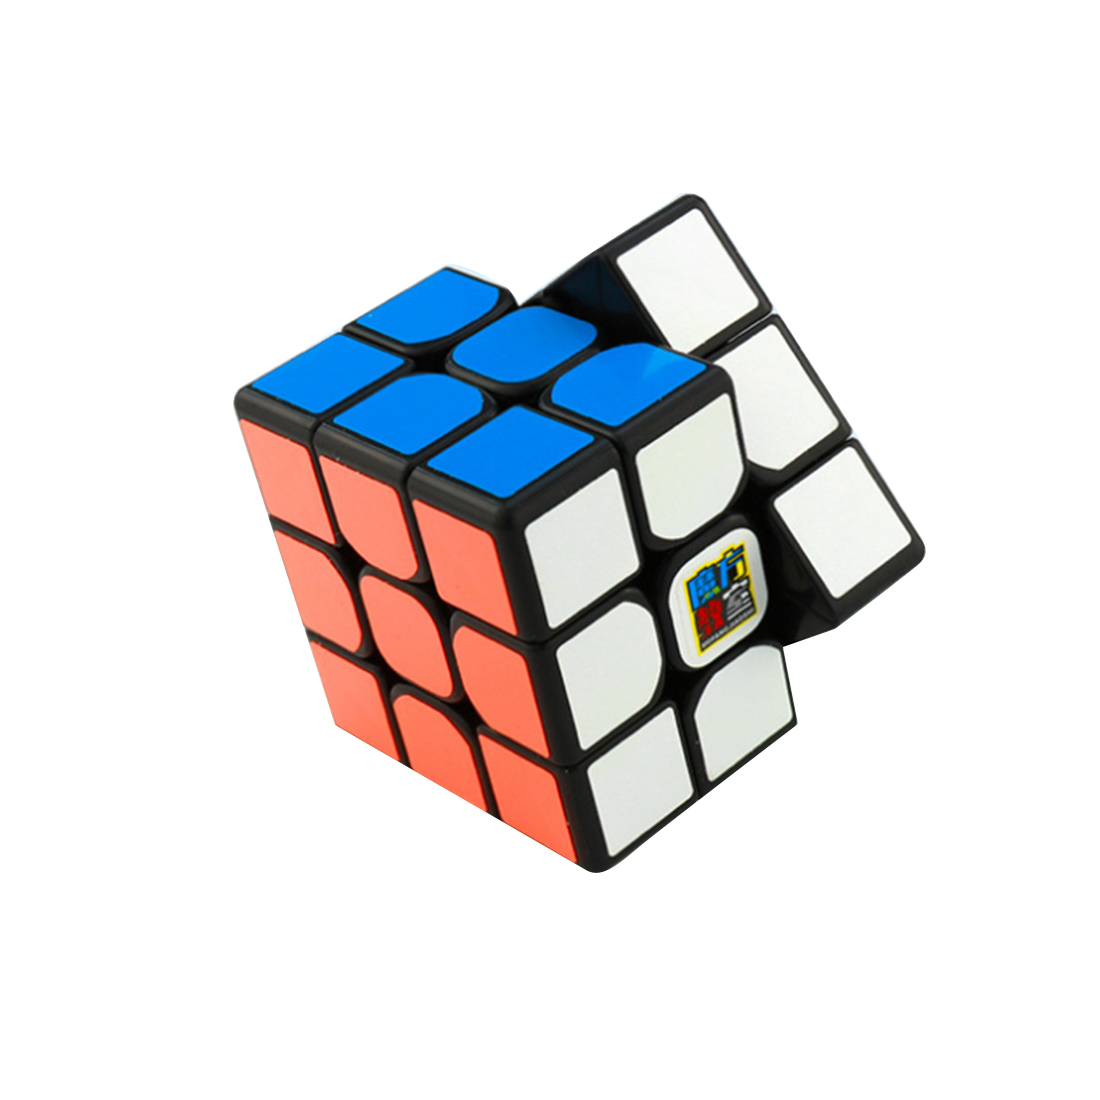 Cubing Classroom MF3RS2 Puzzle Toy 3x3x3 Magic Cube For Beginner